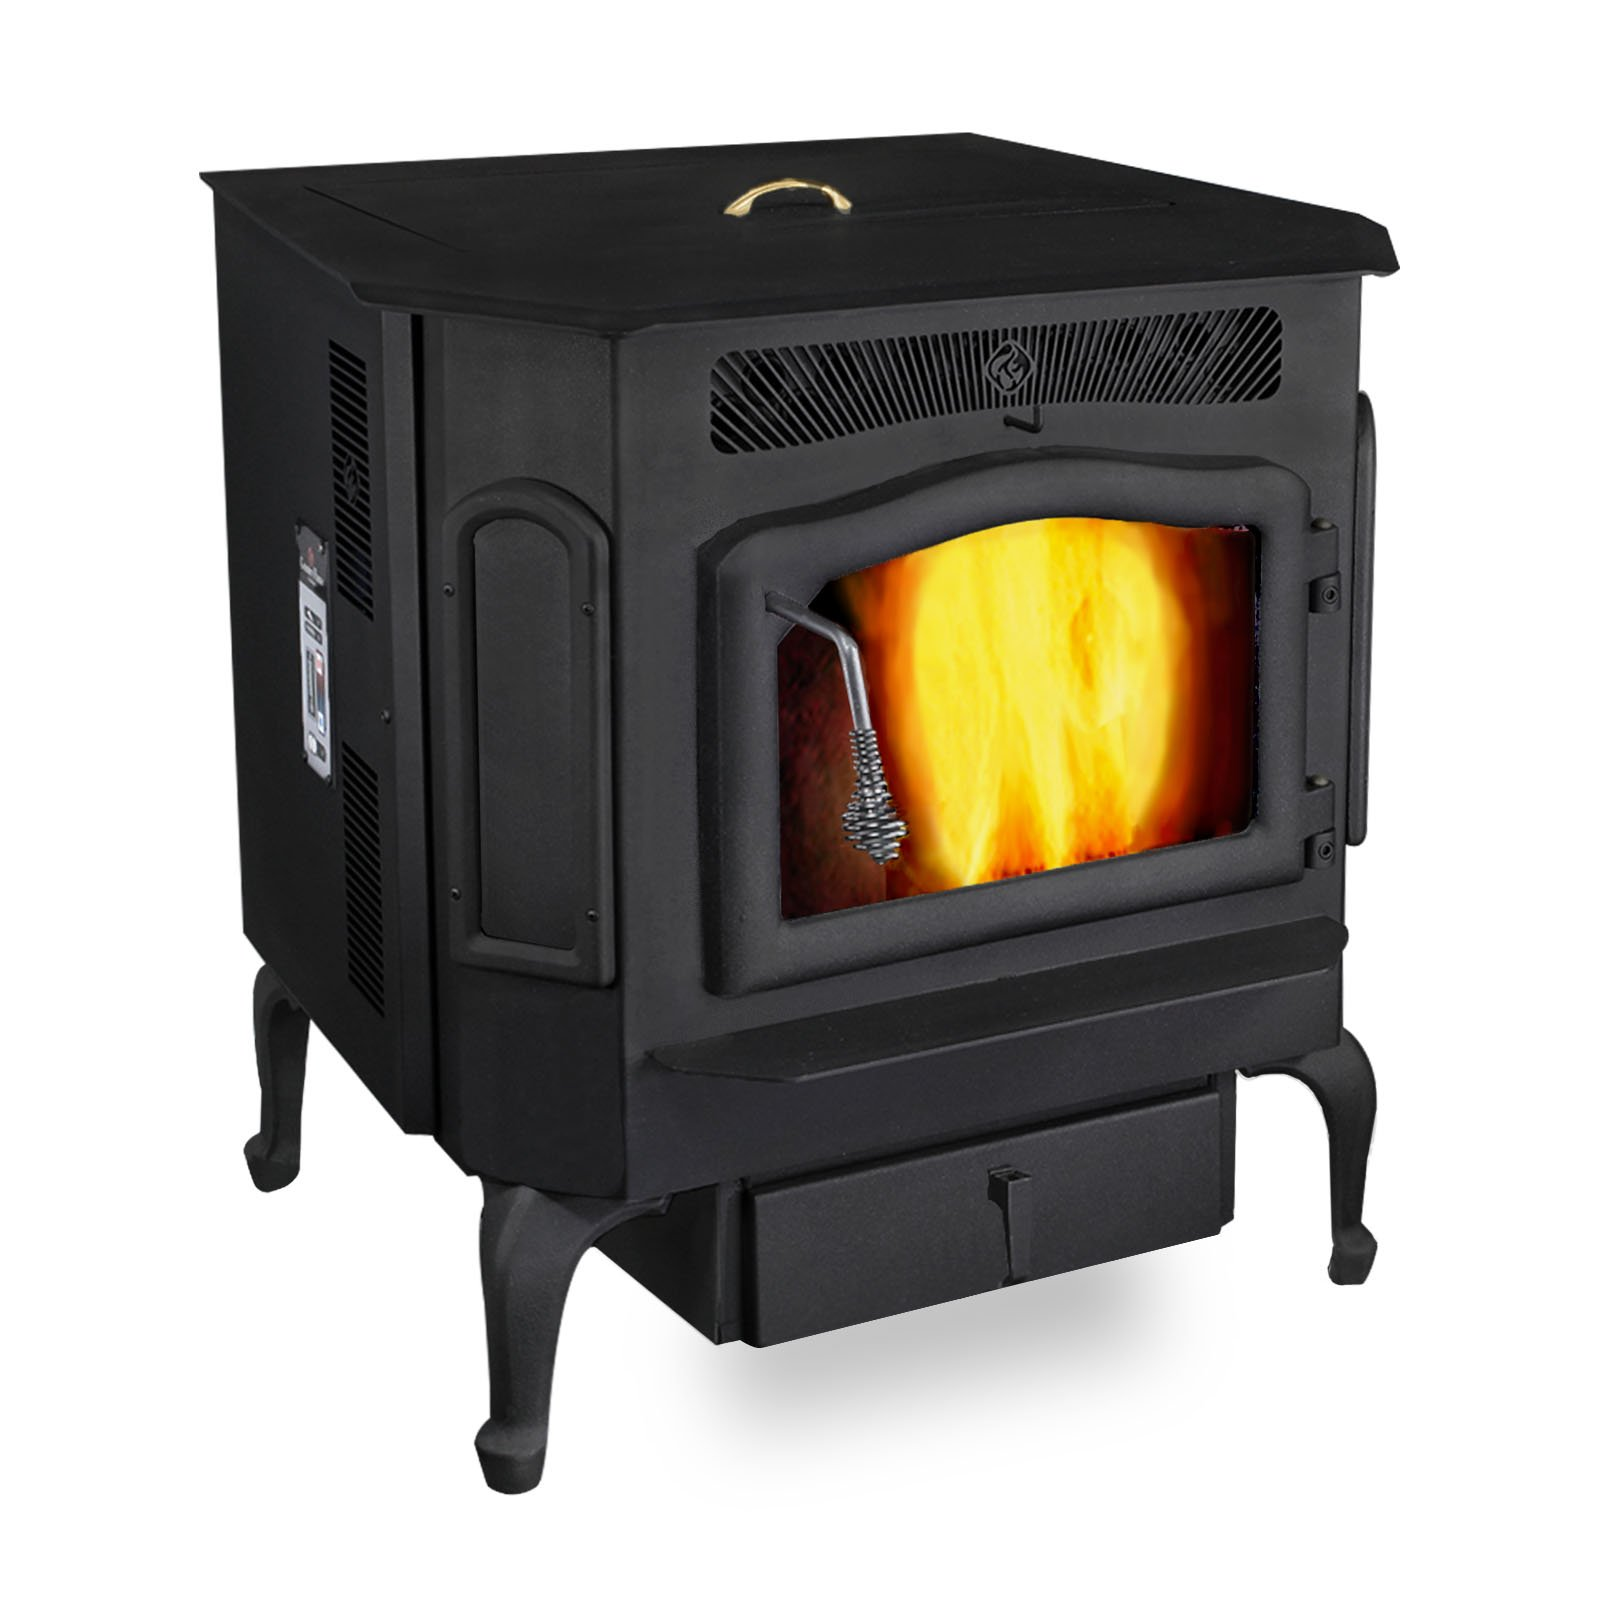 Classic Black Country Flame Harvester Pellet/Corn and Biomass Combustion Stove